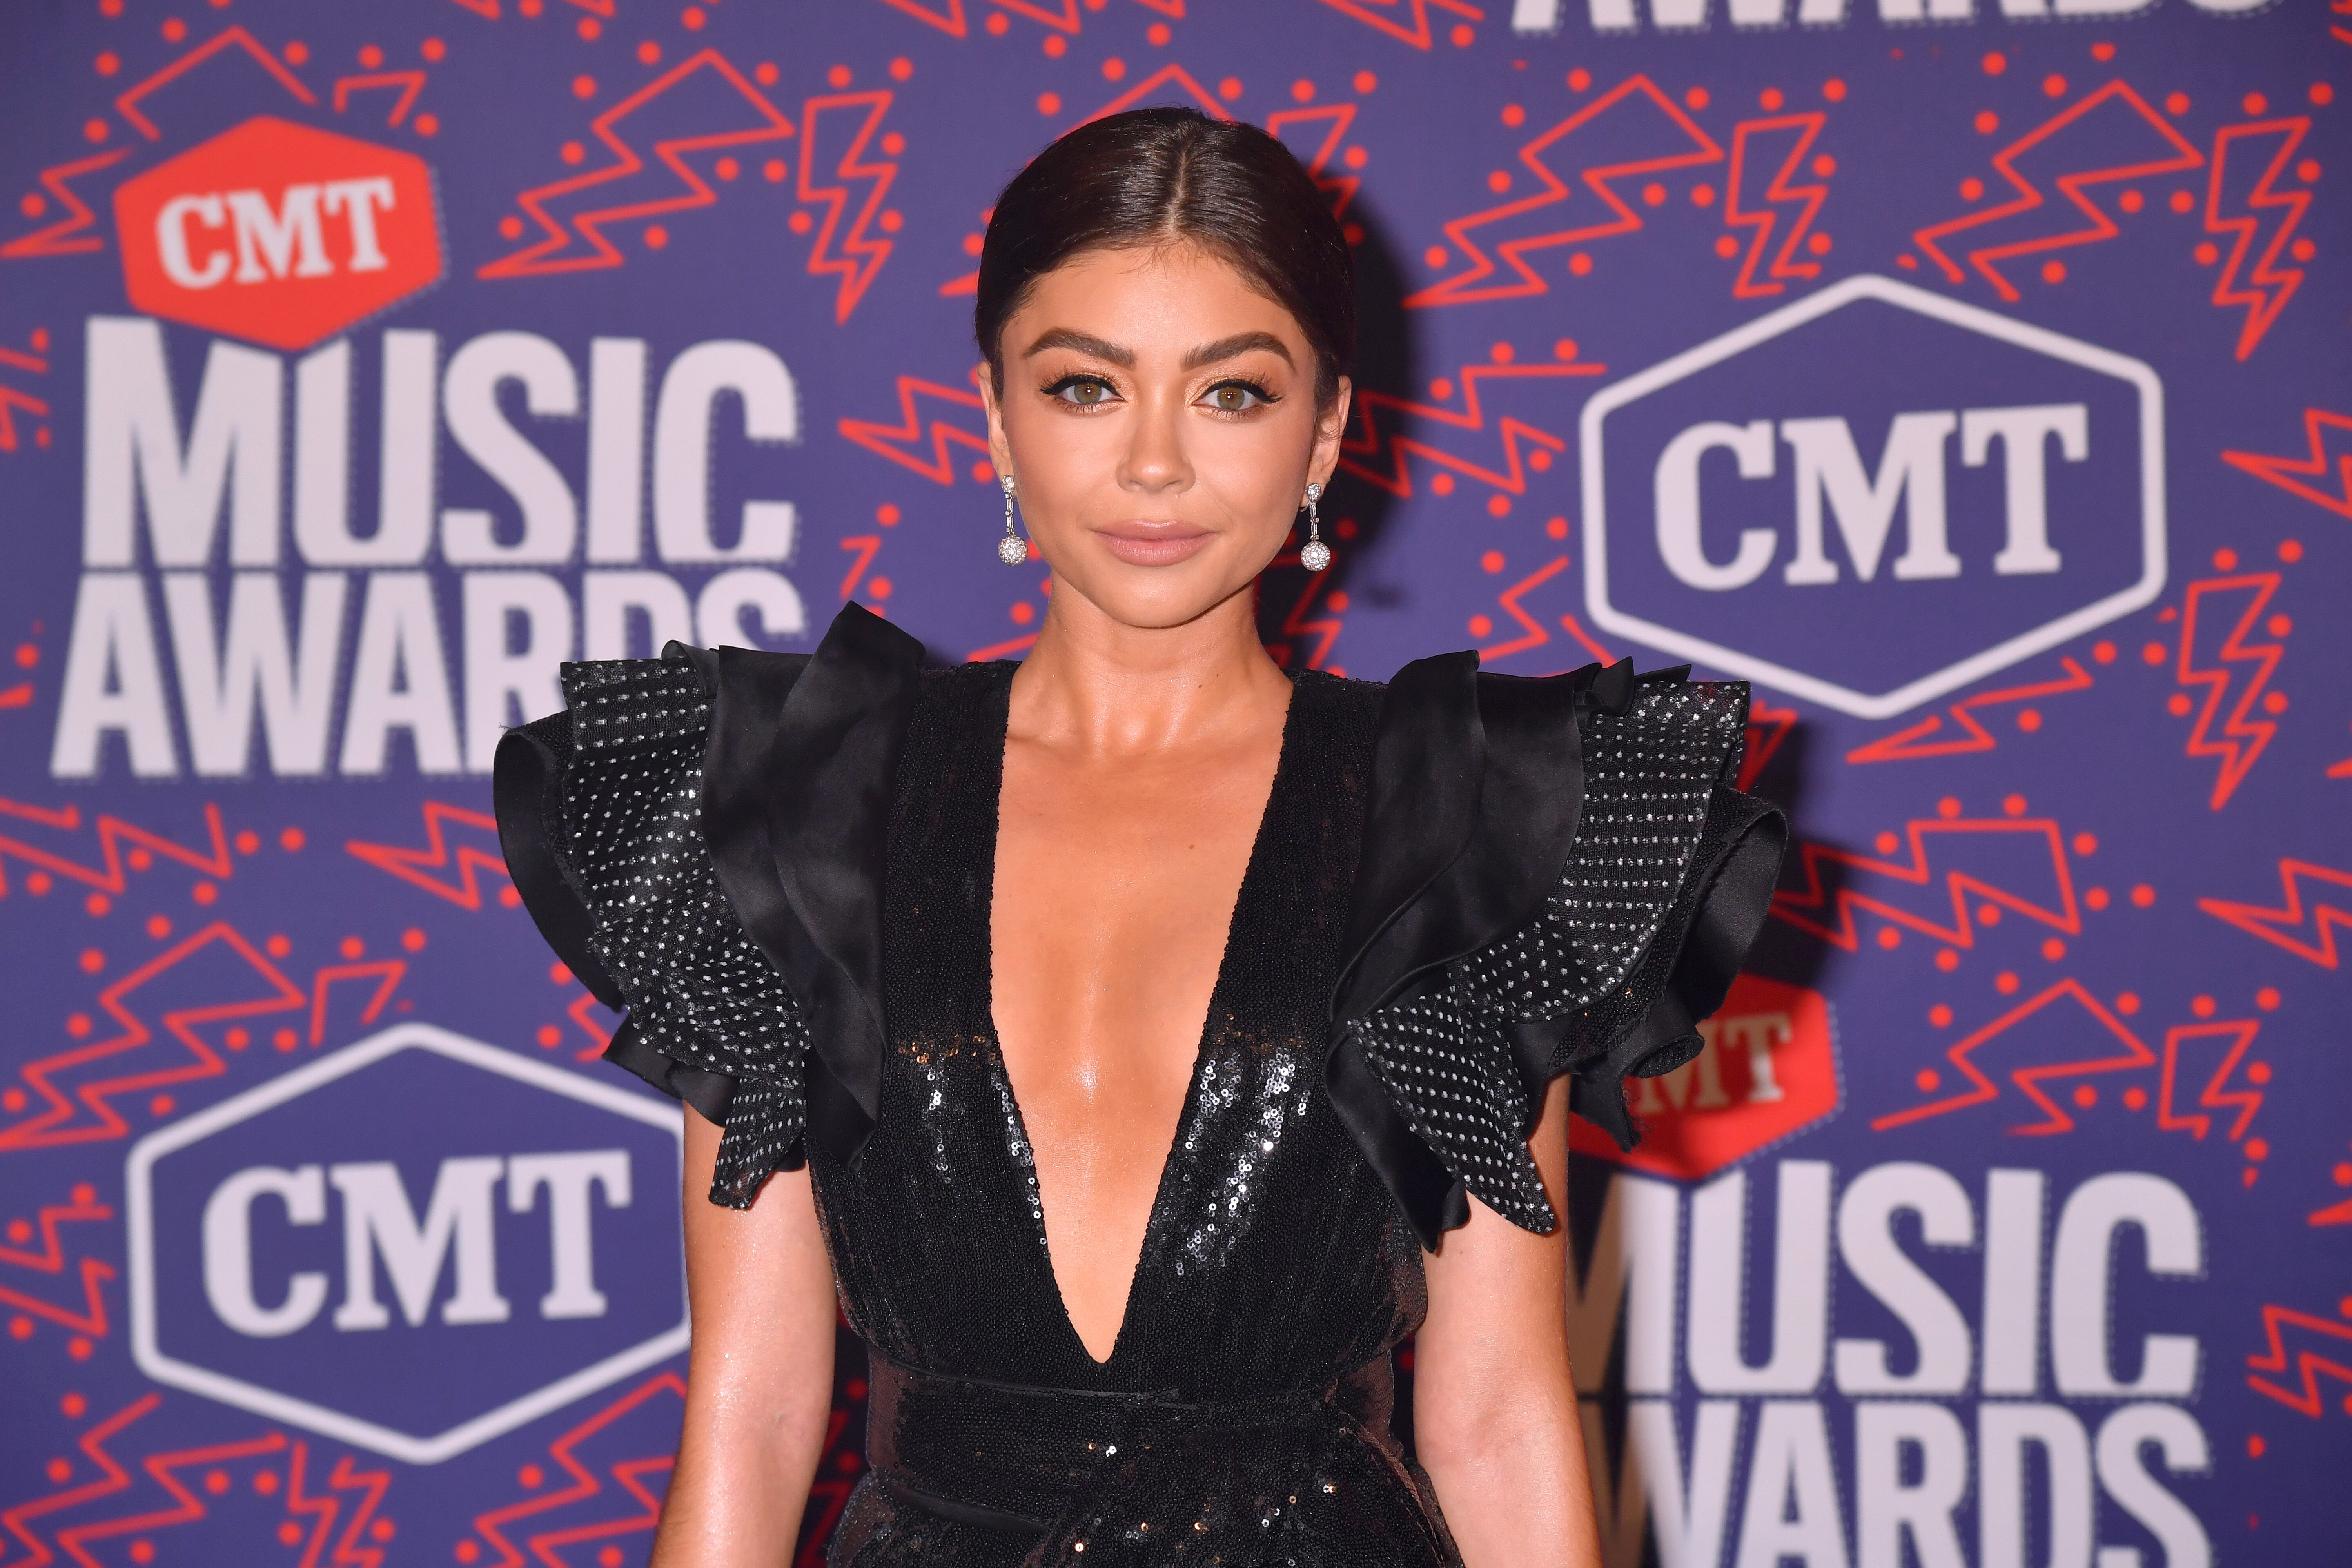 CMT Music Awards 2019 Sarah Hyland Shines in Plunging Black Mini 6000x4000